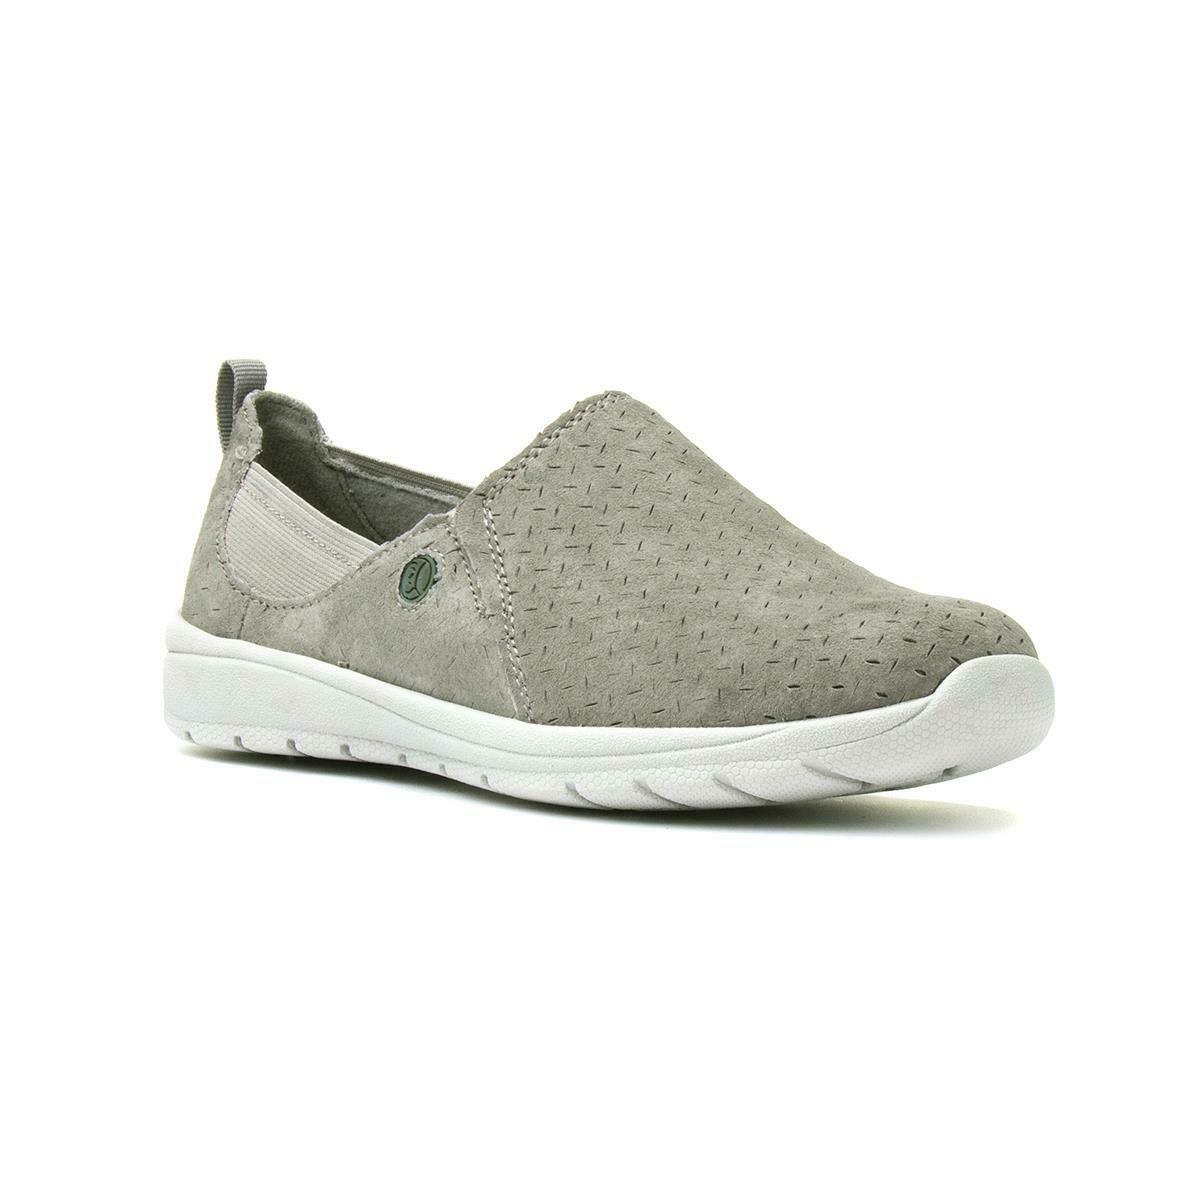 b2cb3c907 Earth Womens Grey Slip On shoes - Sizes 3,4,5,6,7,8 Casual Spirit ...